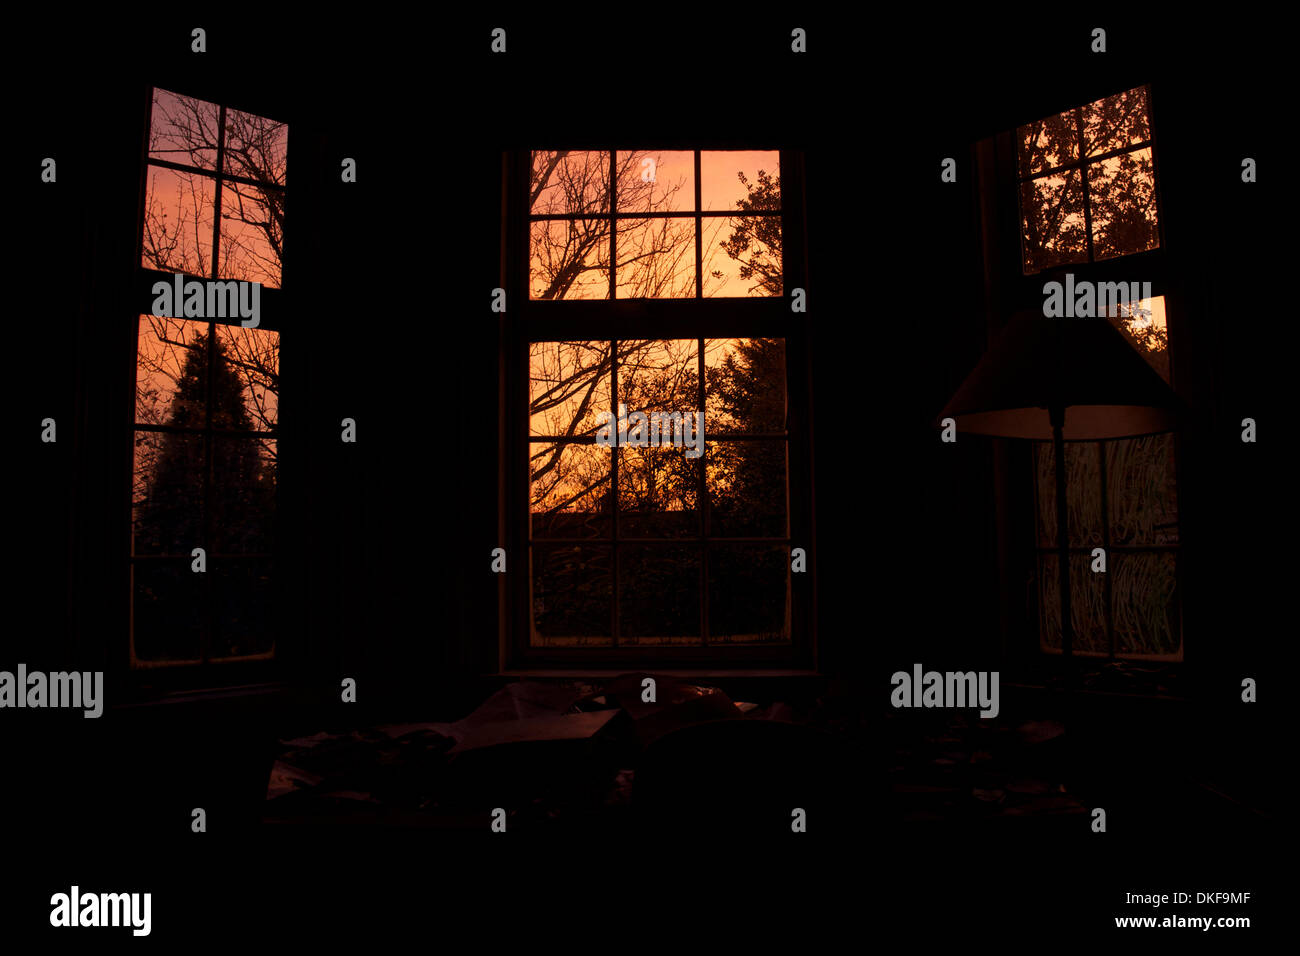 London, UK 5th December 2013. Red sky in the morning, shepherd's warning. Red sky as seen through bay window in Sydenham, London alerting us to a major storm system. Photo credit: Paul Treacy / Alamy Live News. - Stock Image